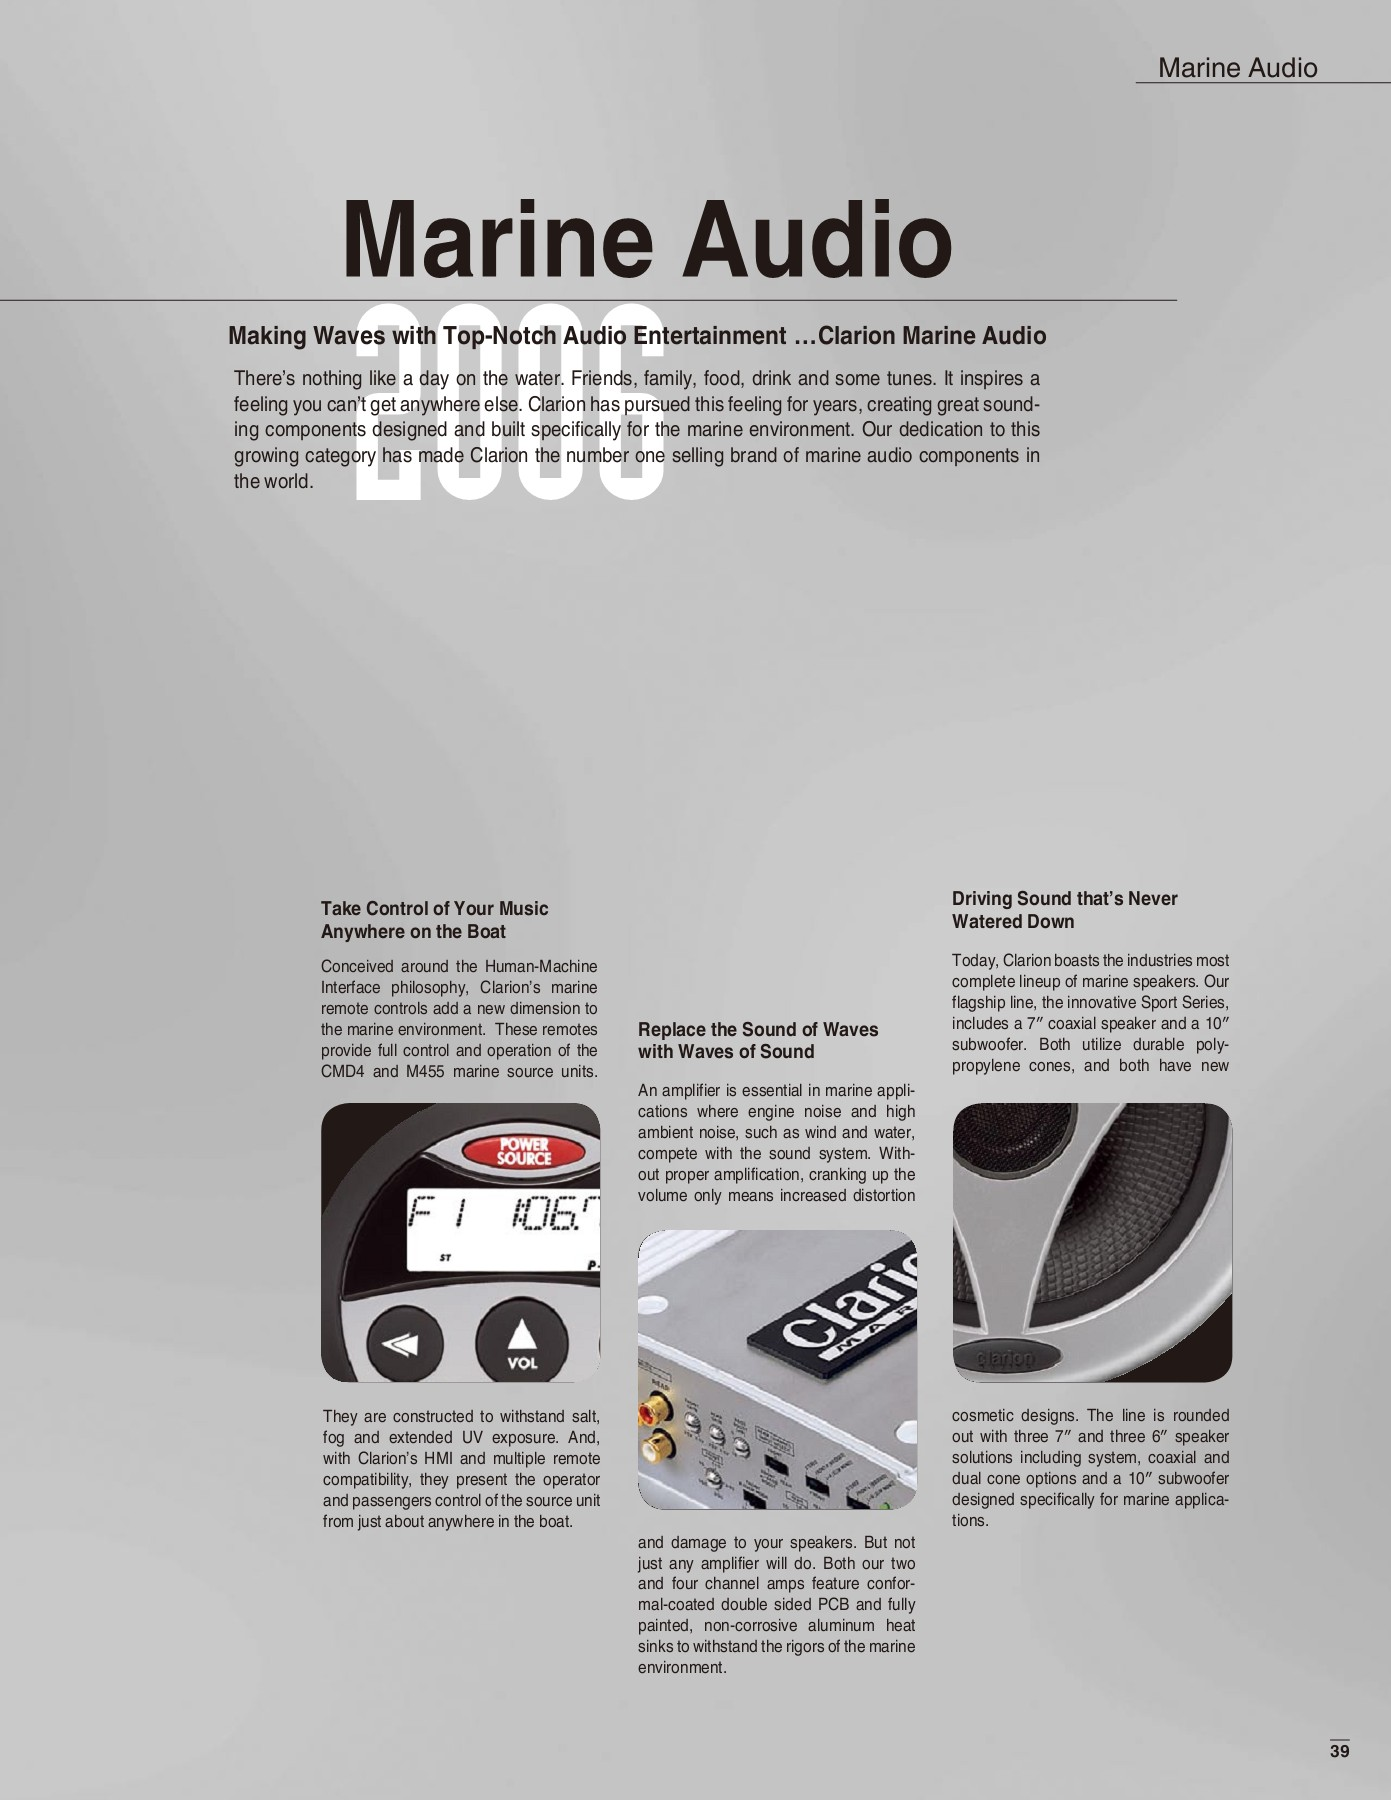 Marine Audio 2006 - Clarion Pages 1 - 6 - Text Version | AnyFlip